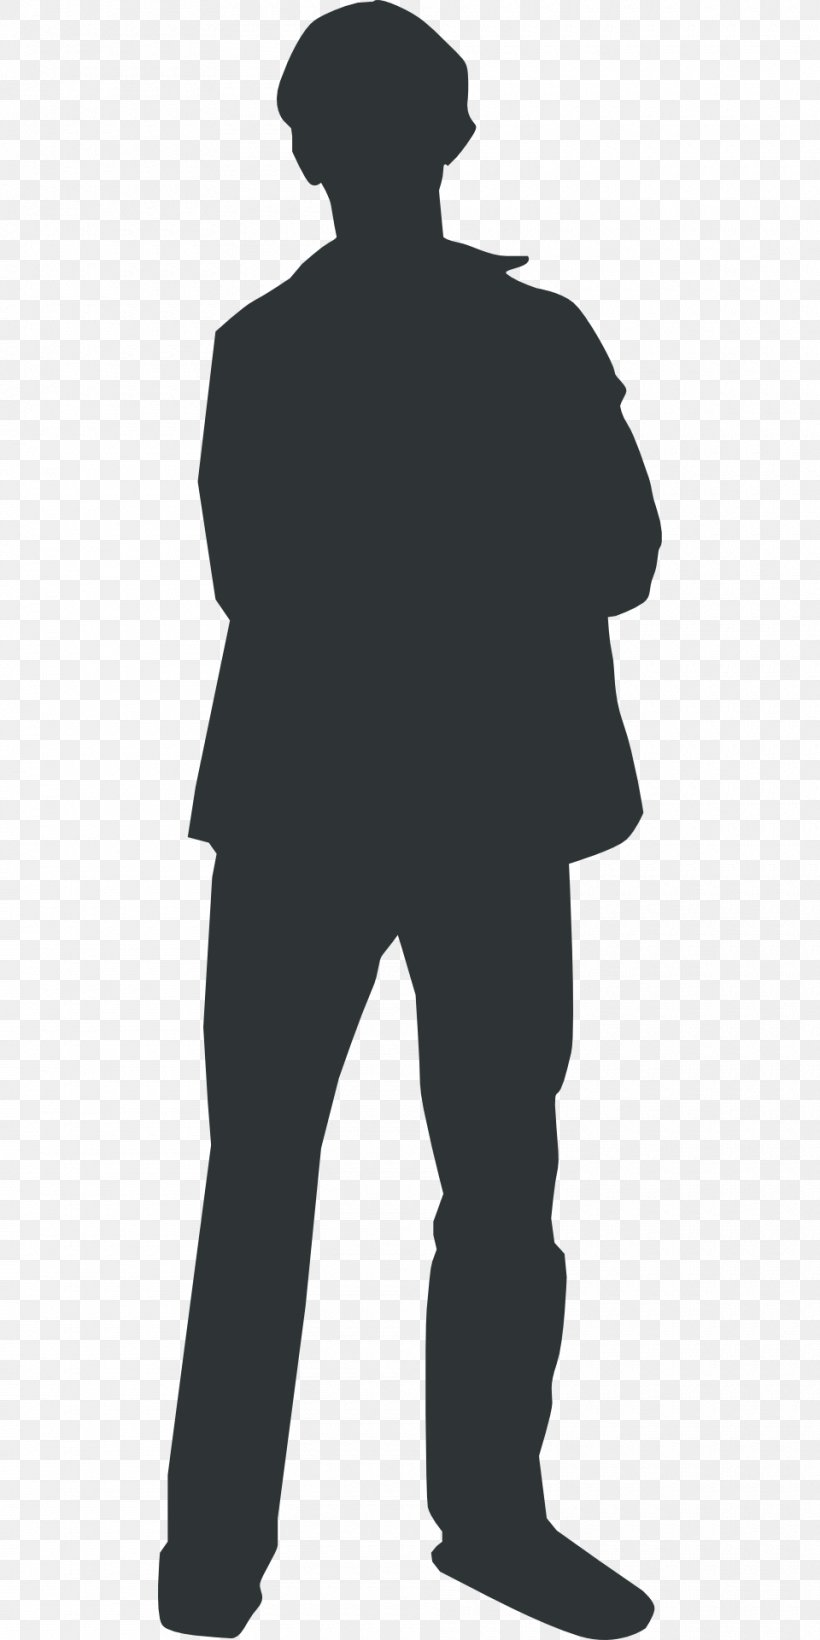 Person Human Body Clip Art, PNG, 960x1920px, Person, Black And White, Coloring Book, Drawing, Gentleman Download Free